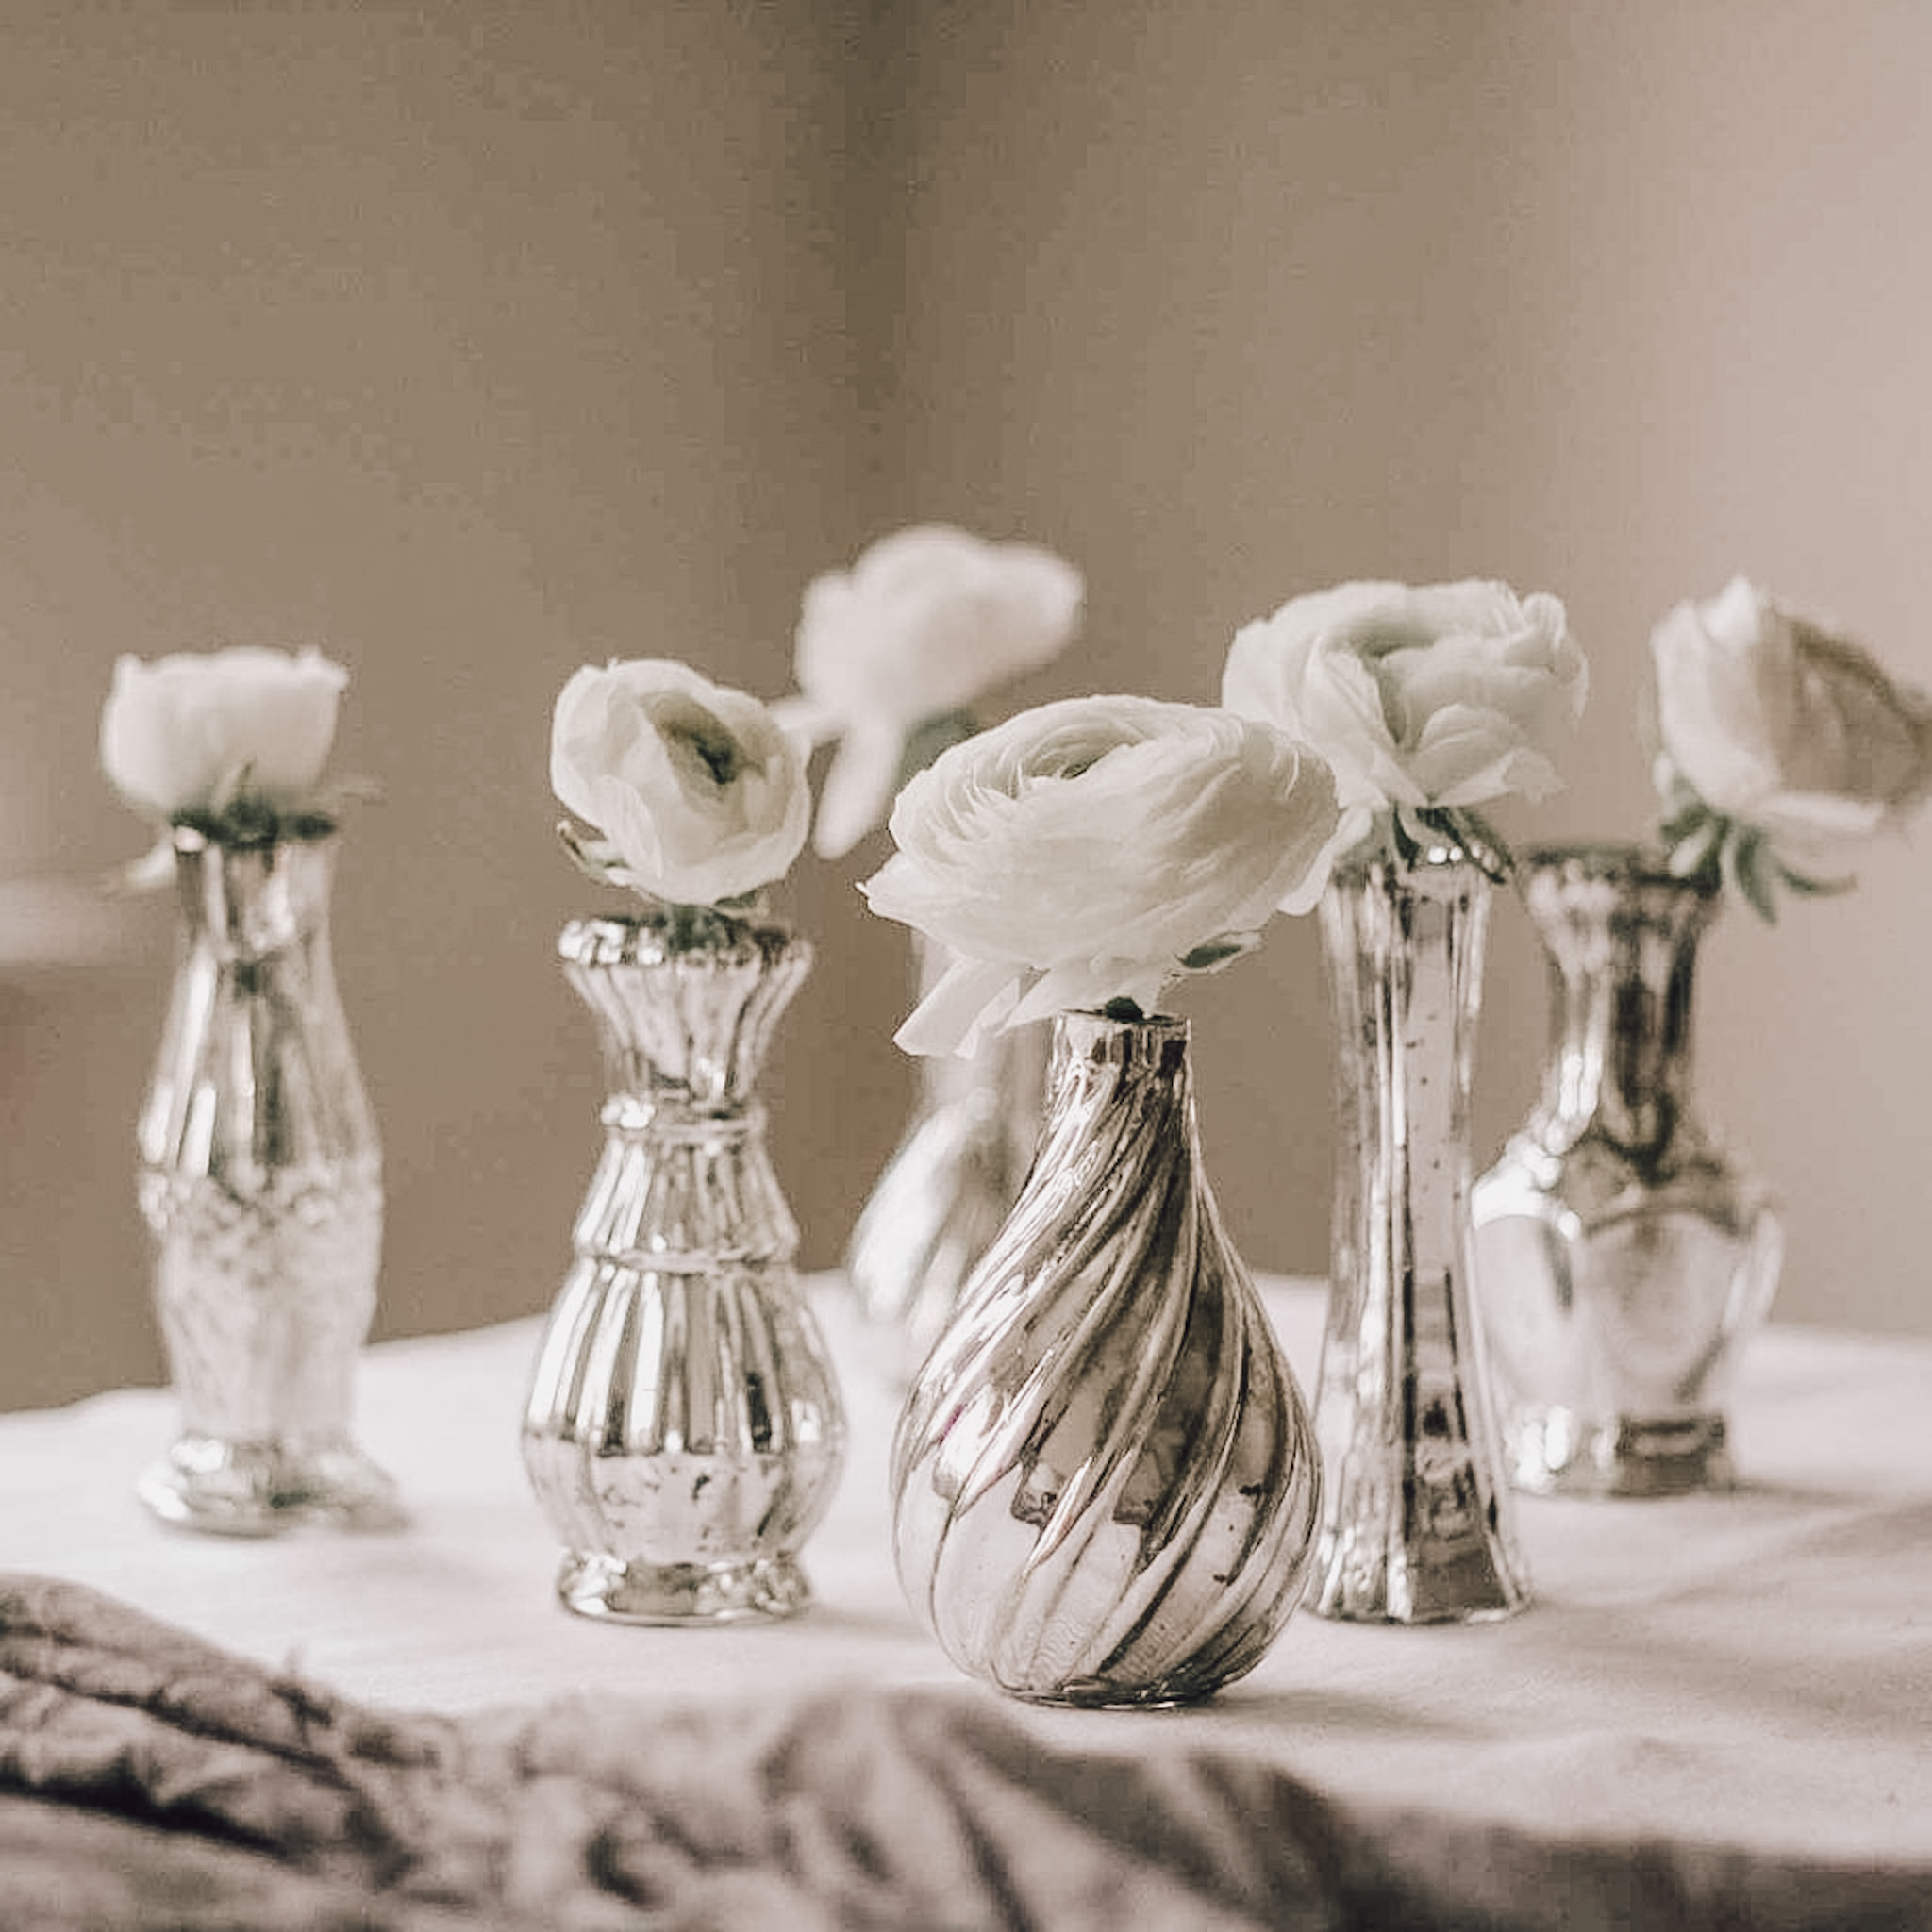 Silver Bud vases for weddings